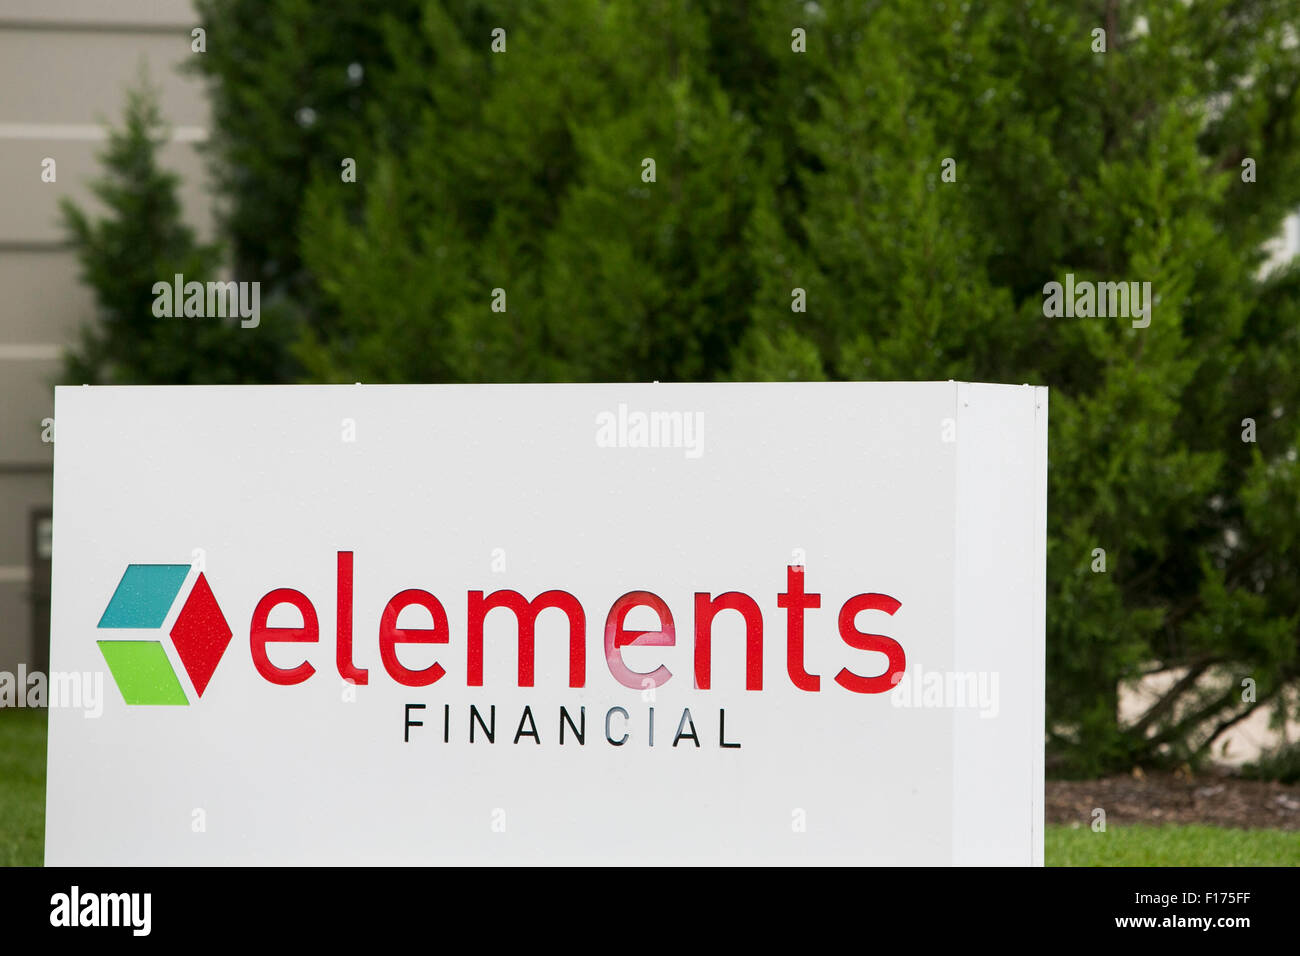 A logo sign outside of a facility occupied by the Elements Financial in Greenfield, Indiana on August 15, 2015. - Stock Image